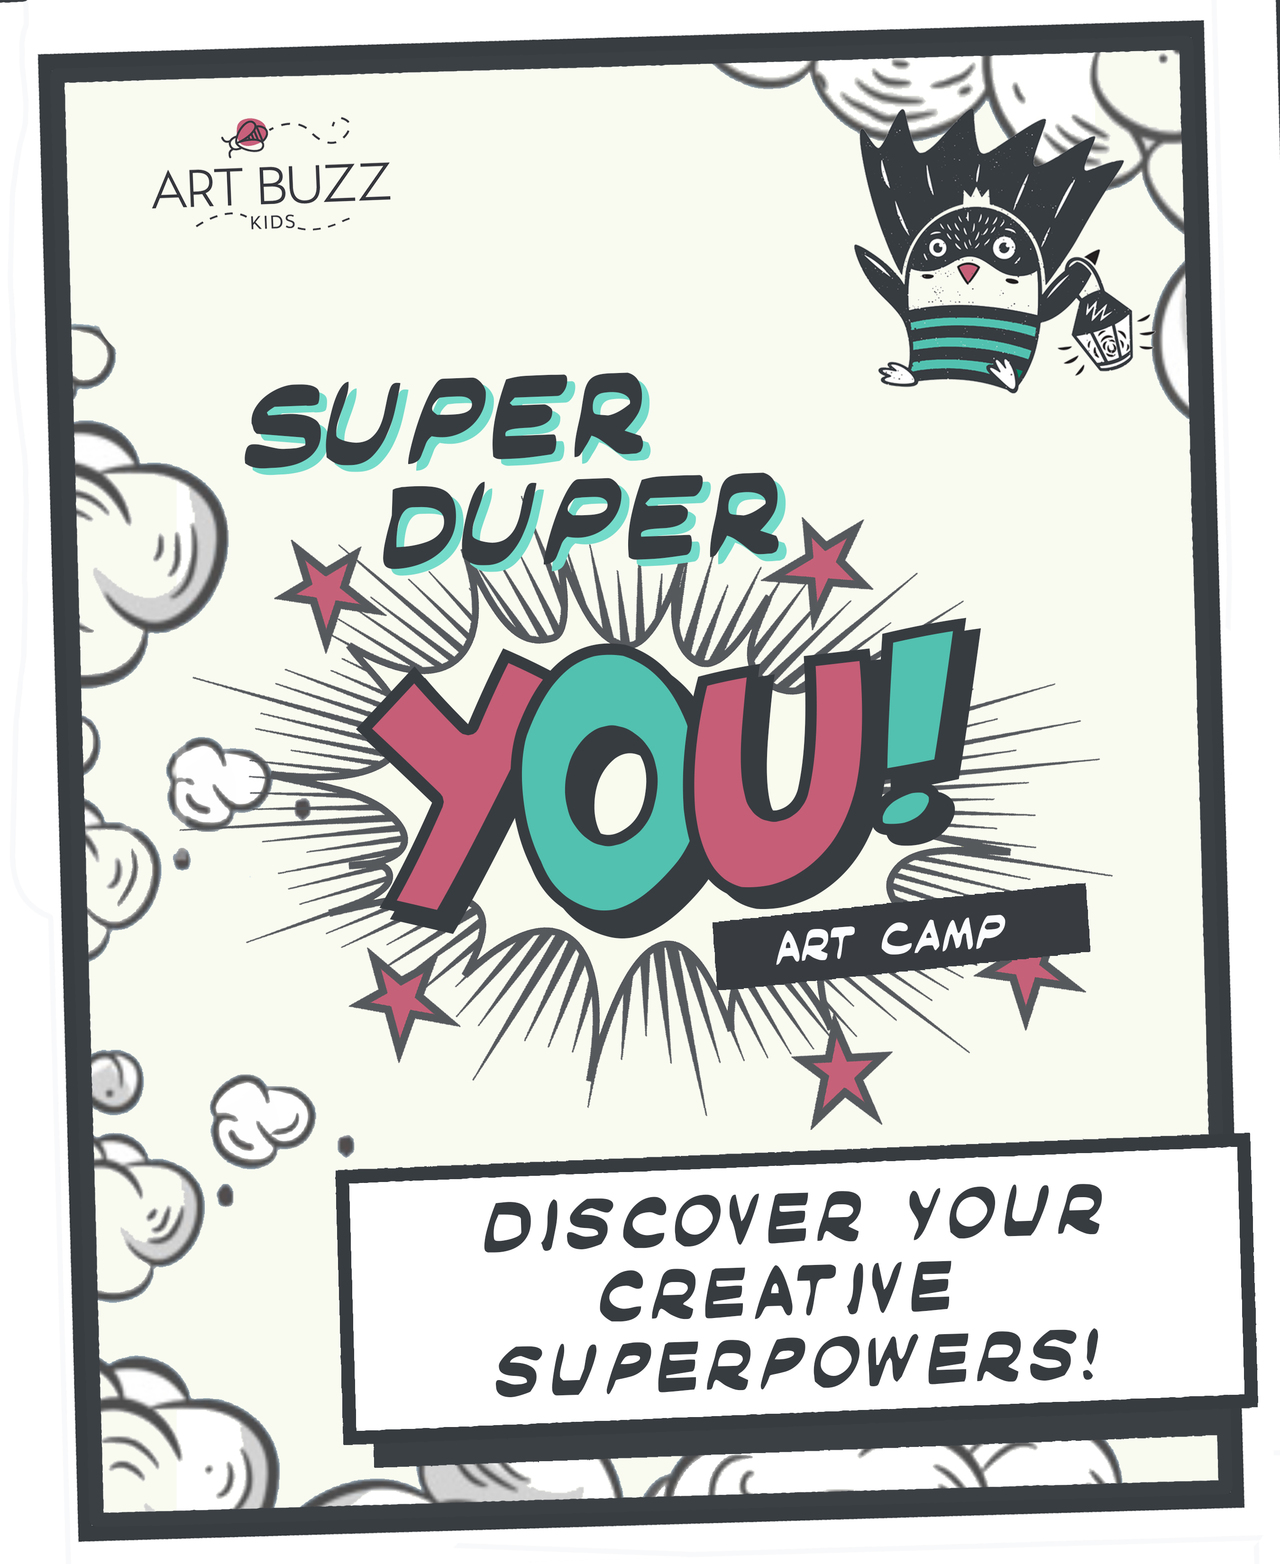 Super Duper You Summer Art Camp For Kids